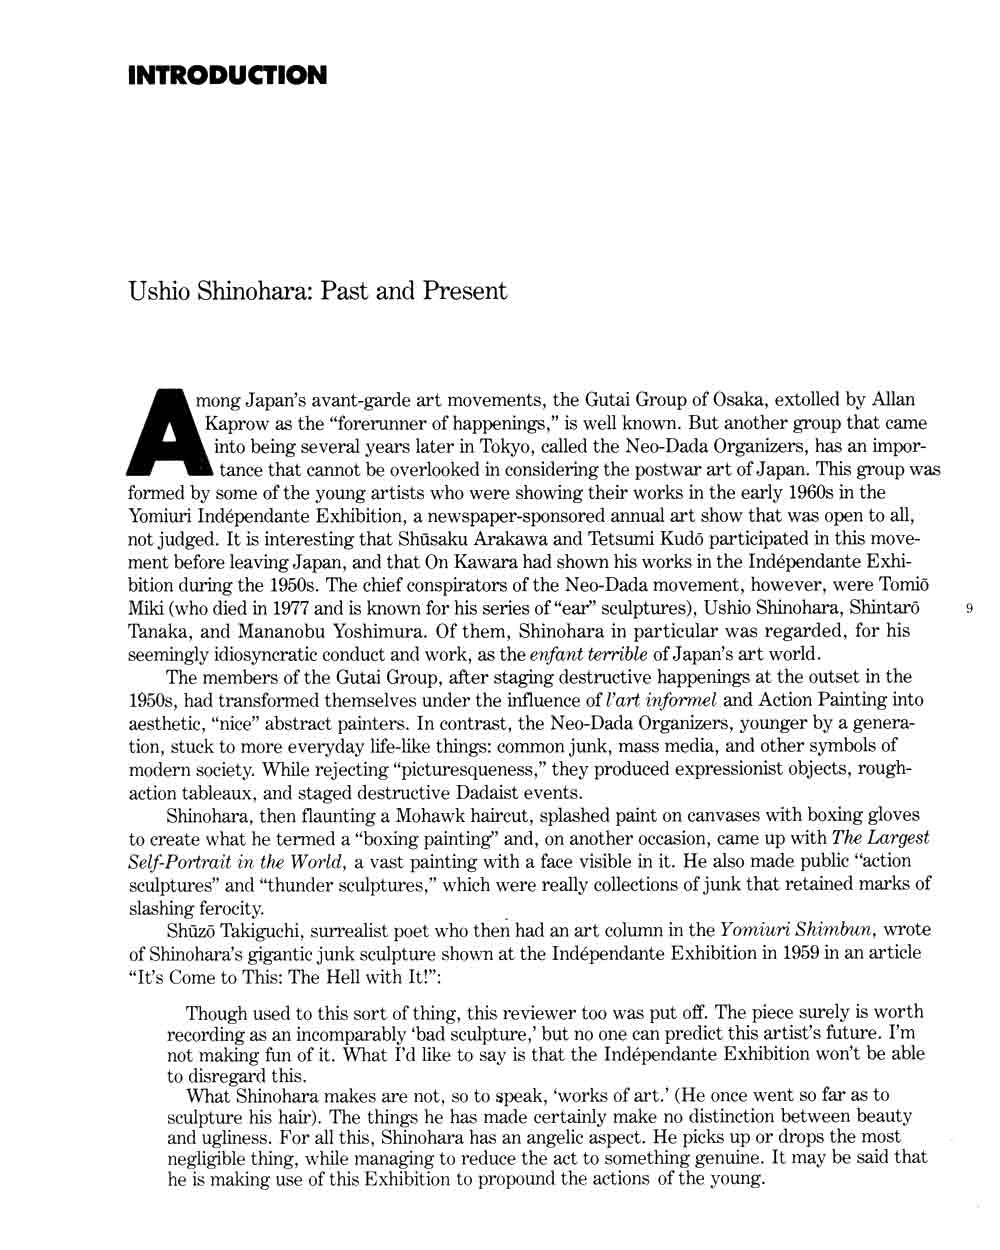 Ushio Shinohara: Past and Present, essay, pg 1